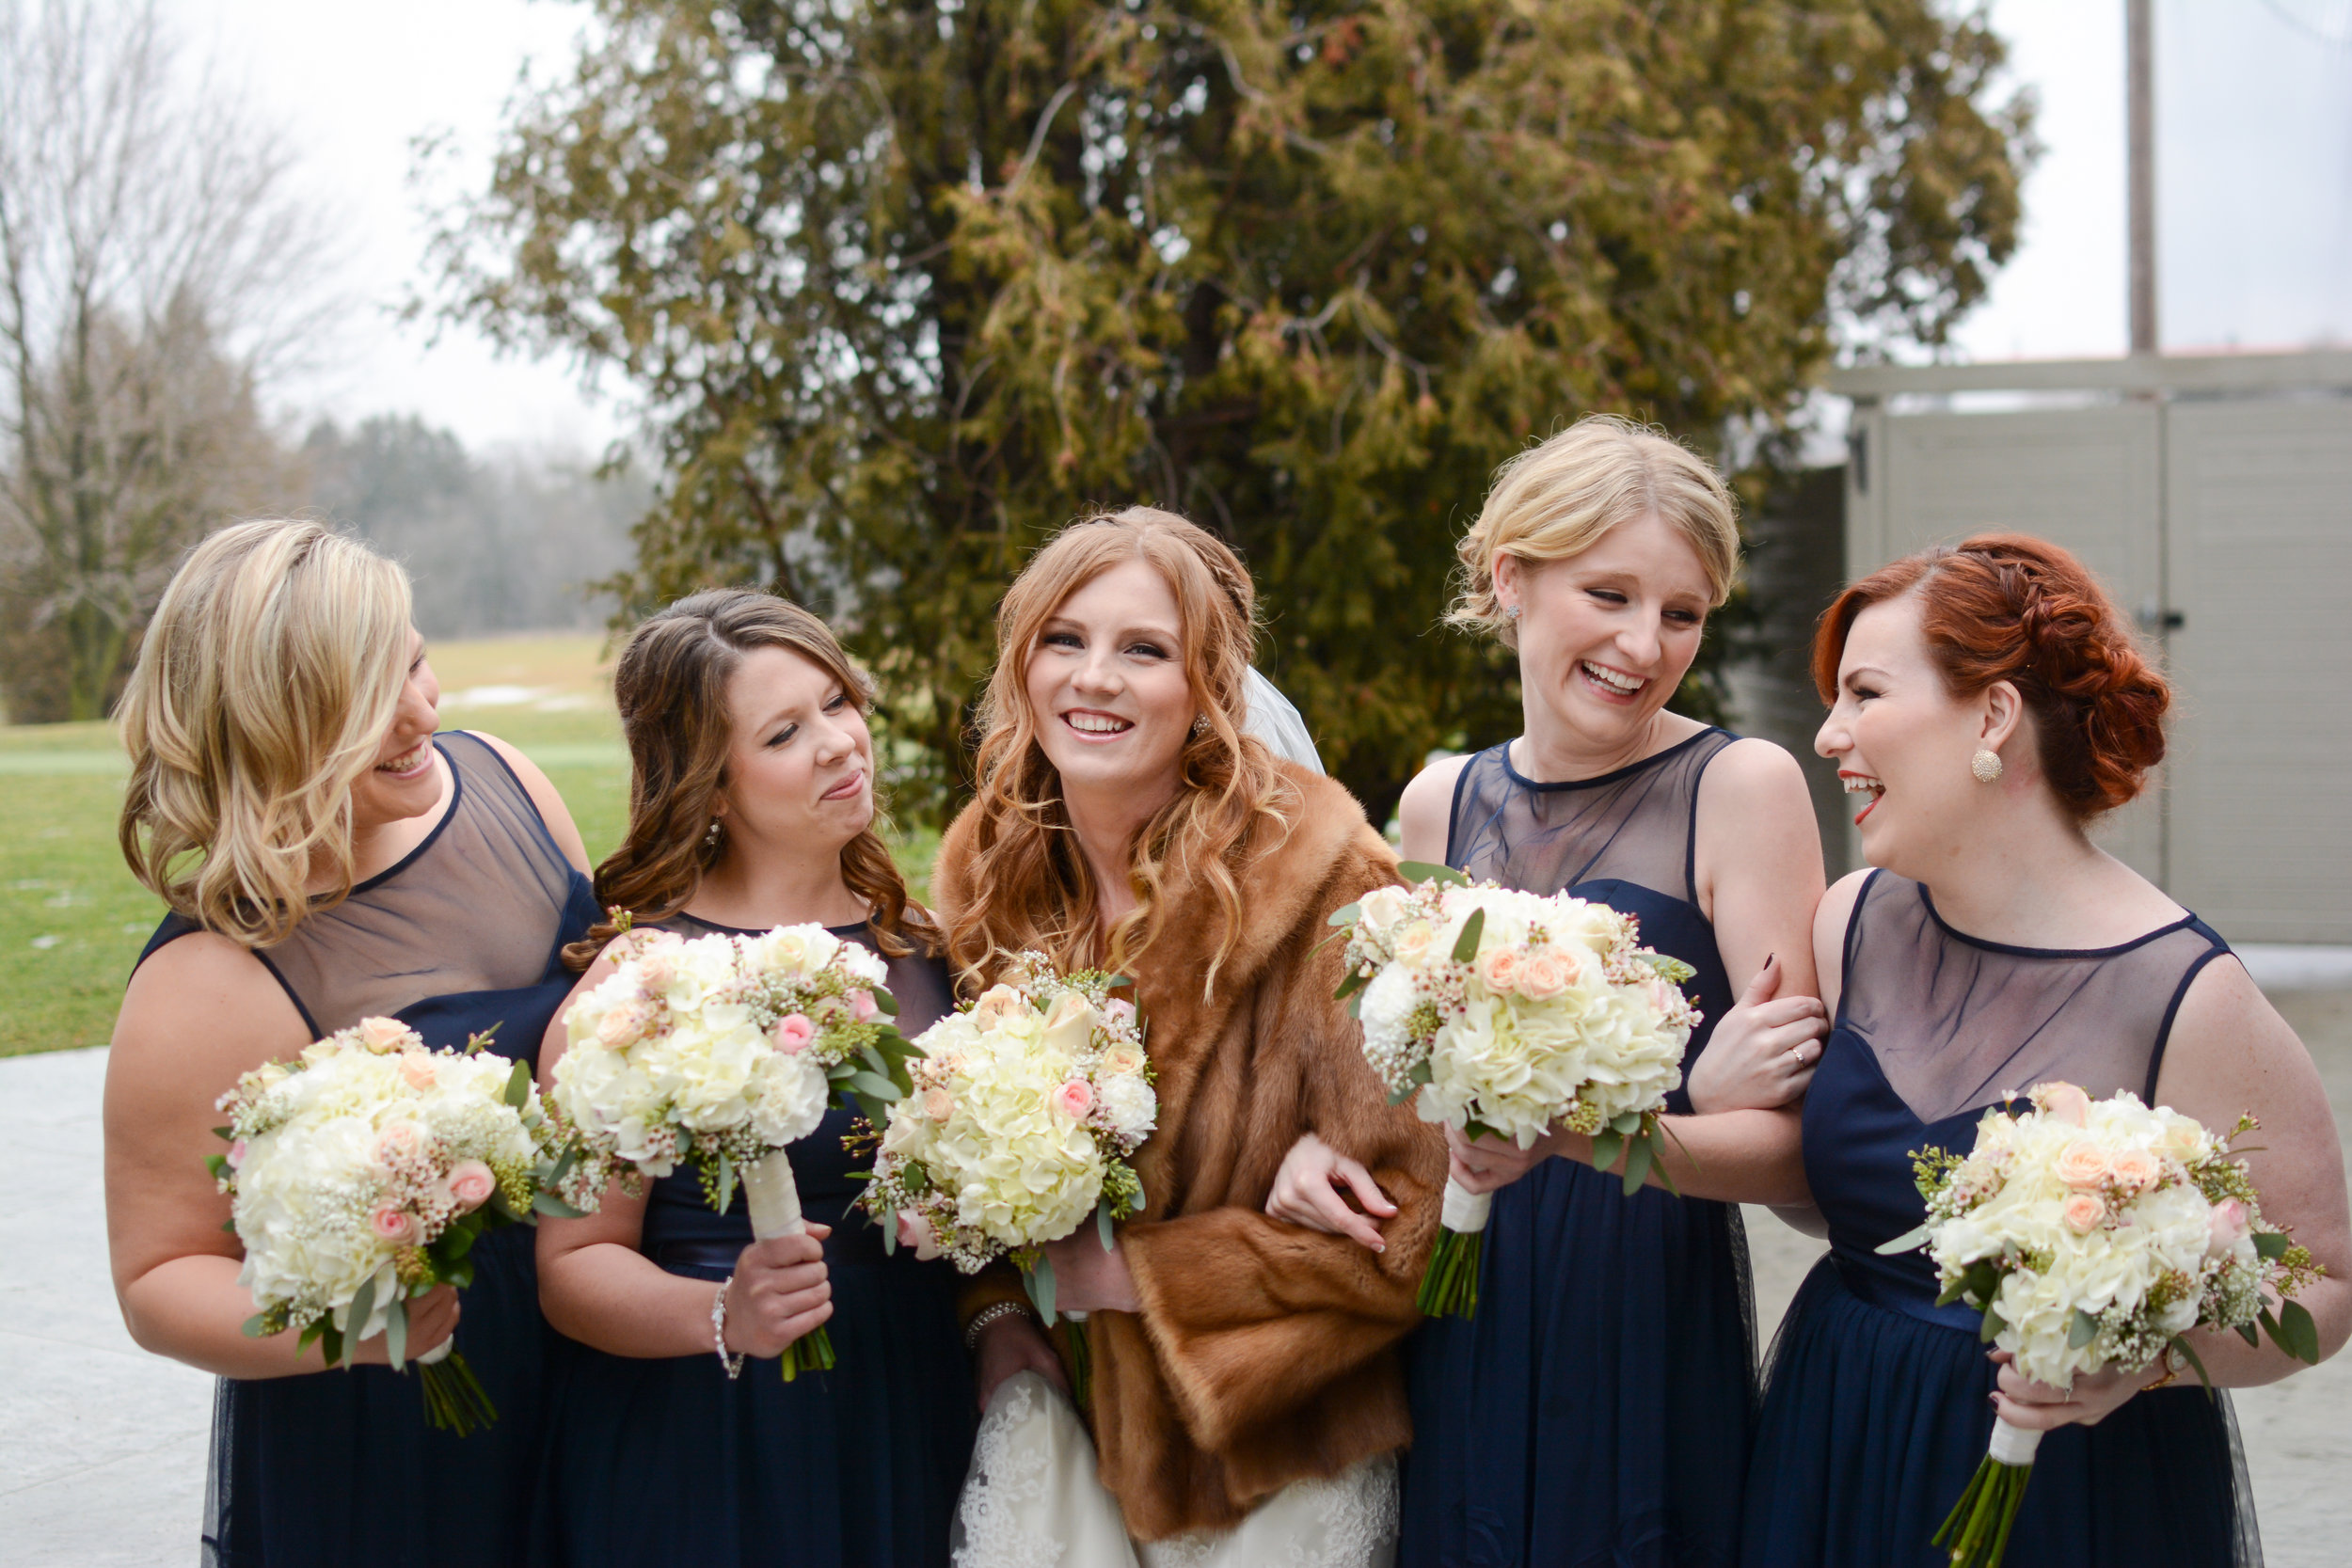 winter-wedding-bridesmaids-navy-dresses-furstole.jpg